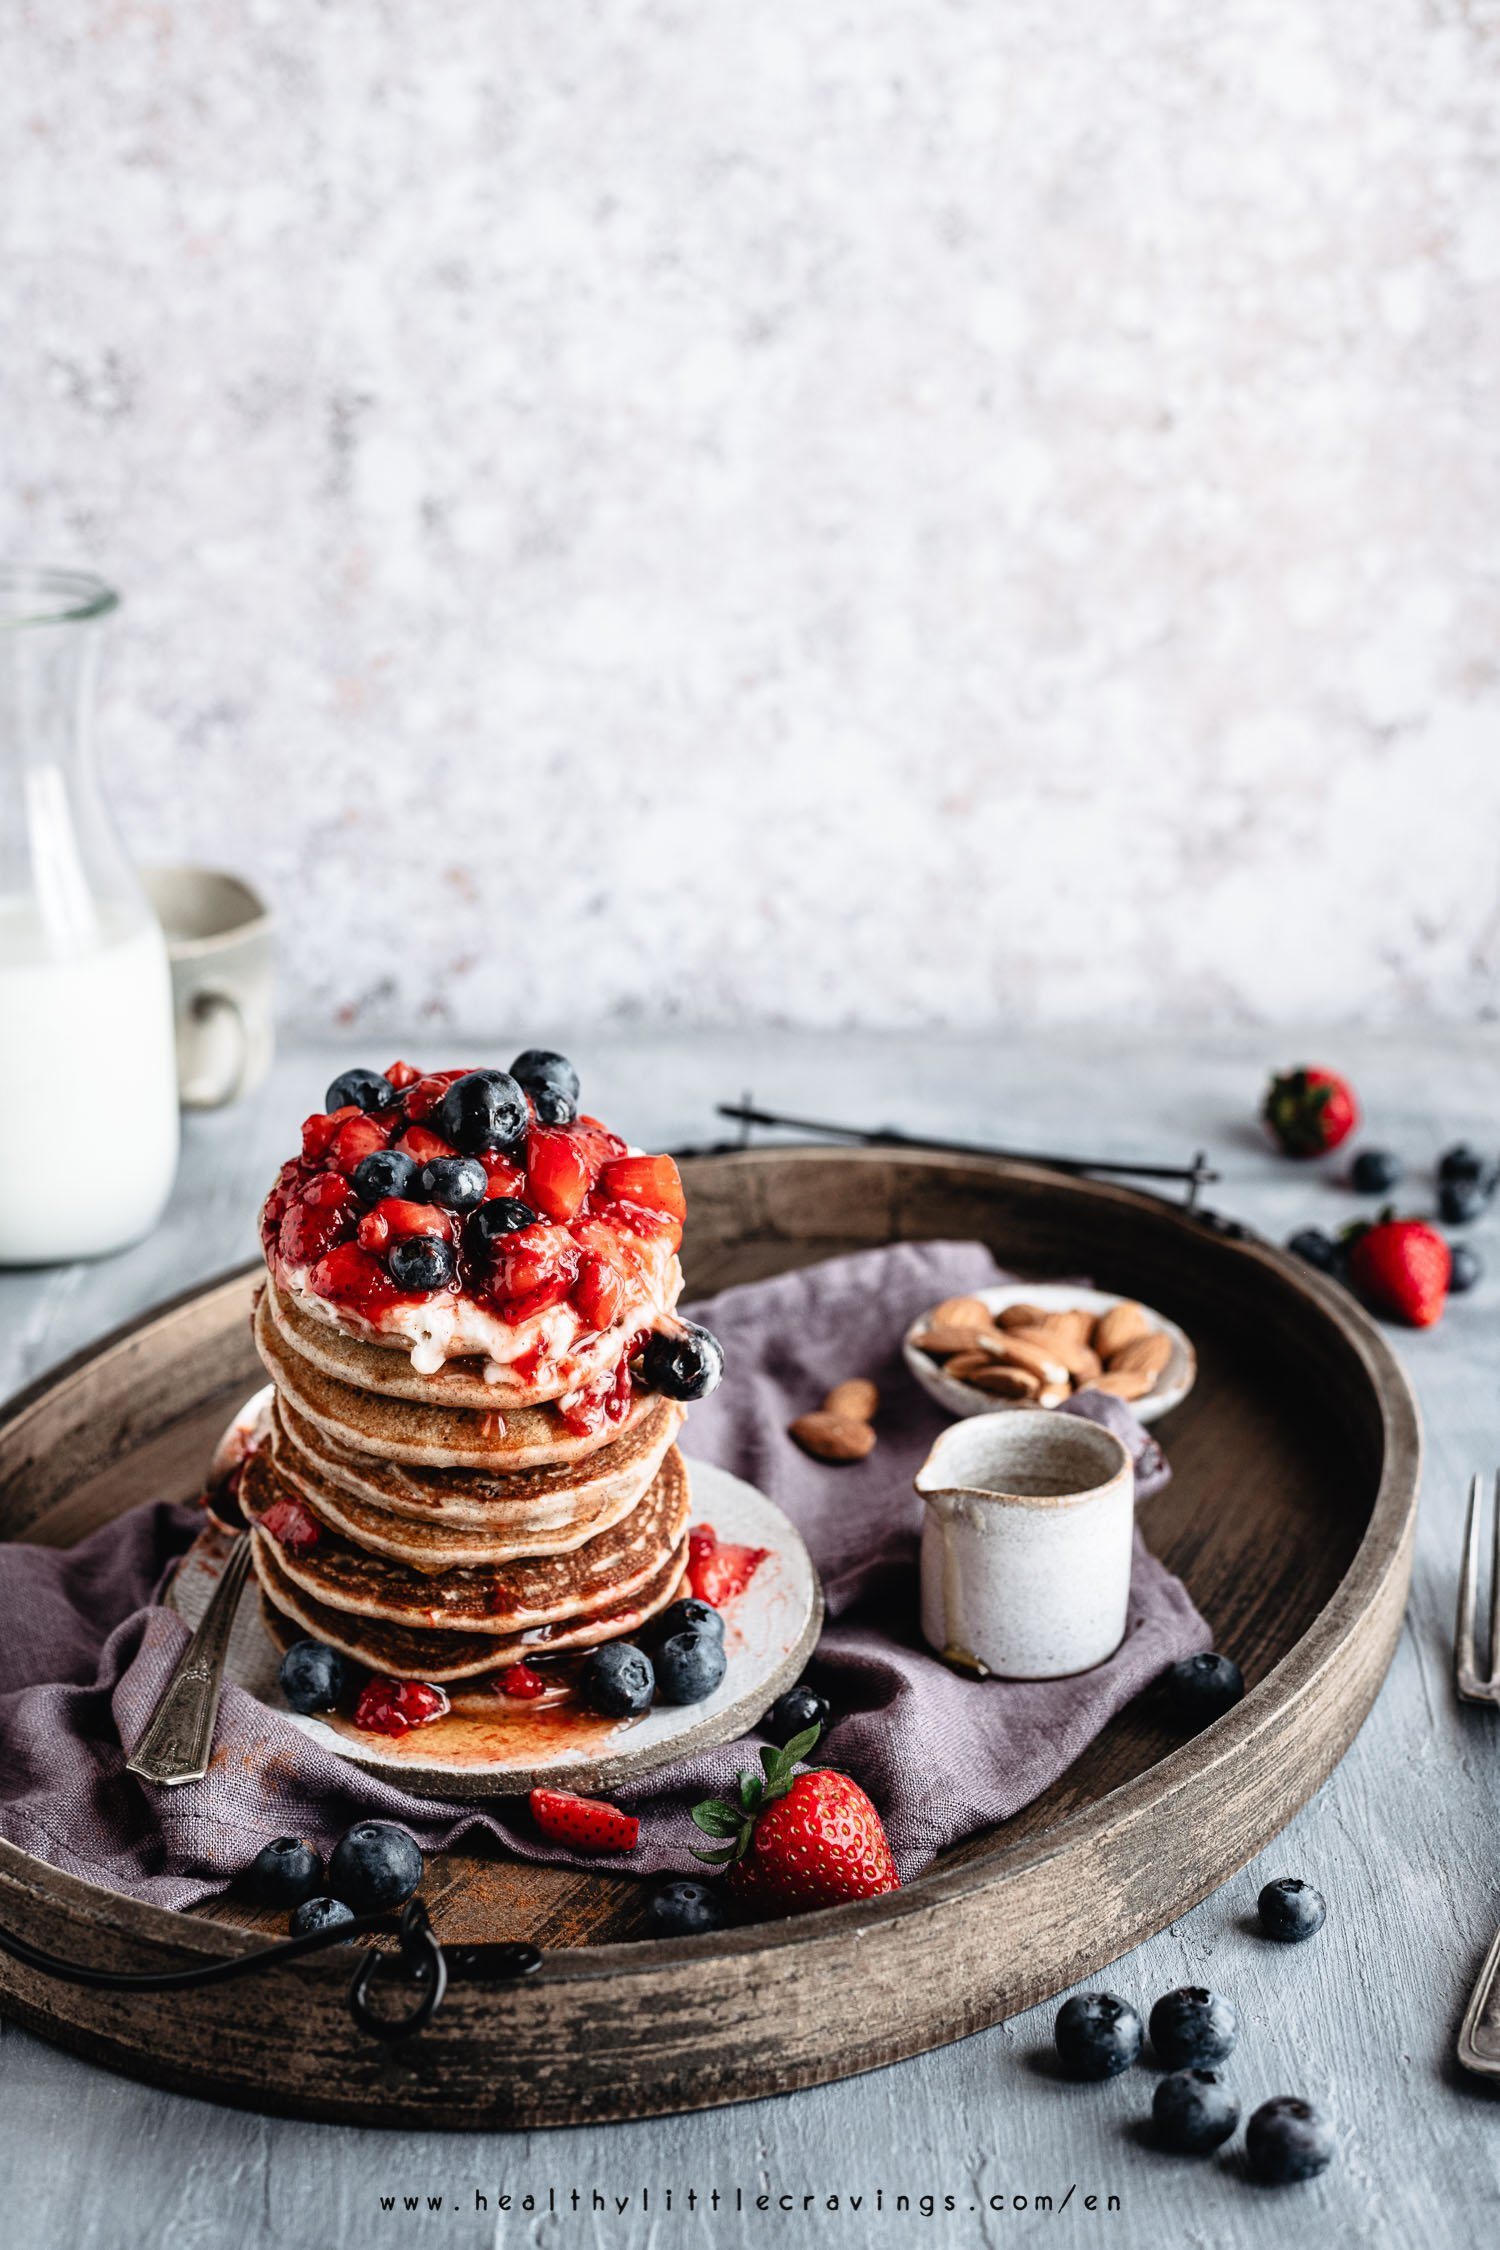 Vegan pancakes with buckwheat flour